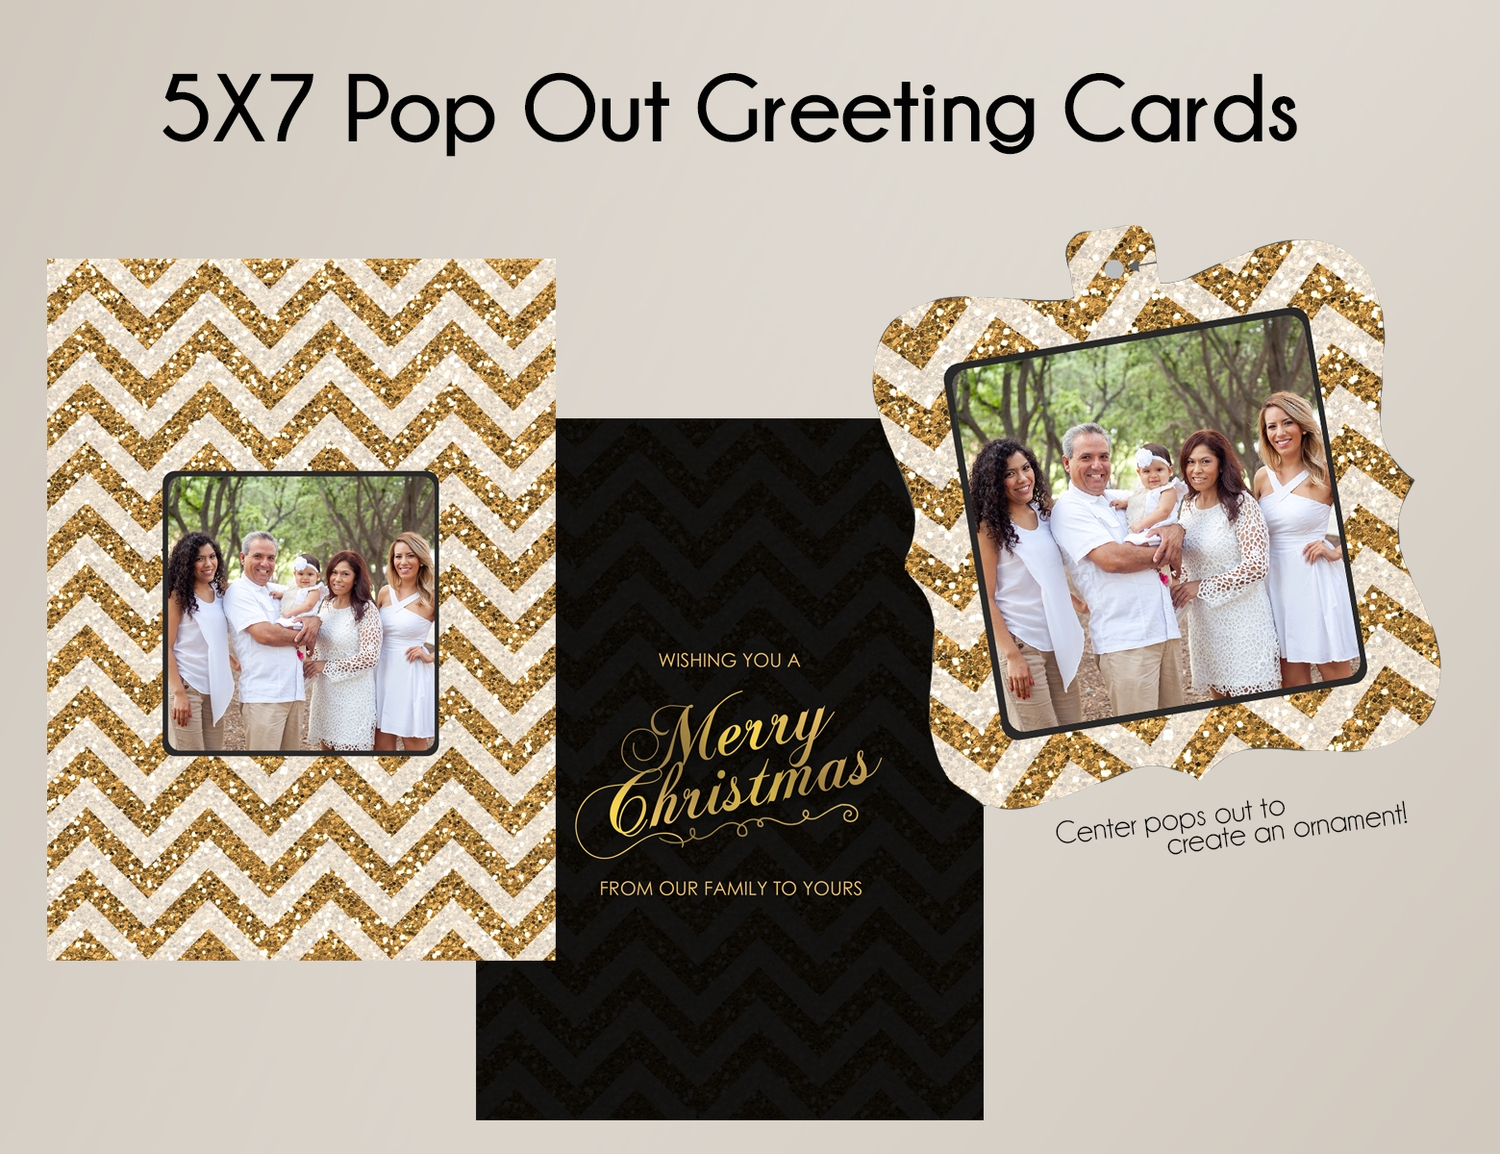 Option #1: 5x7 Pop Out Greeting Card